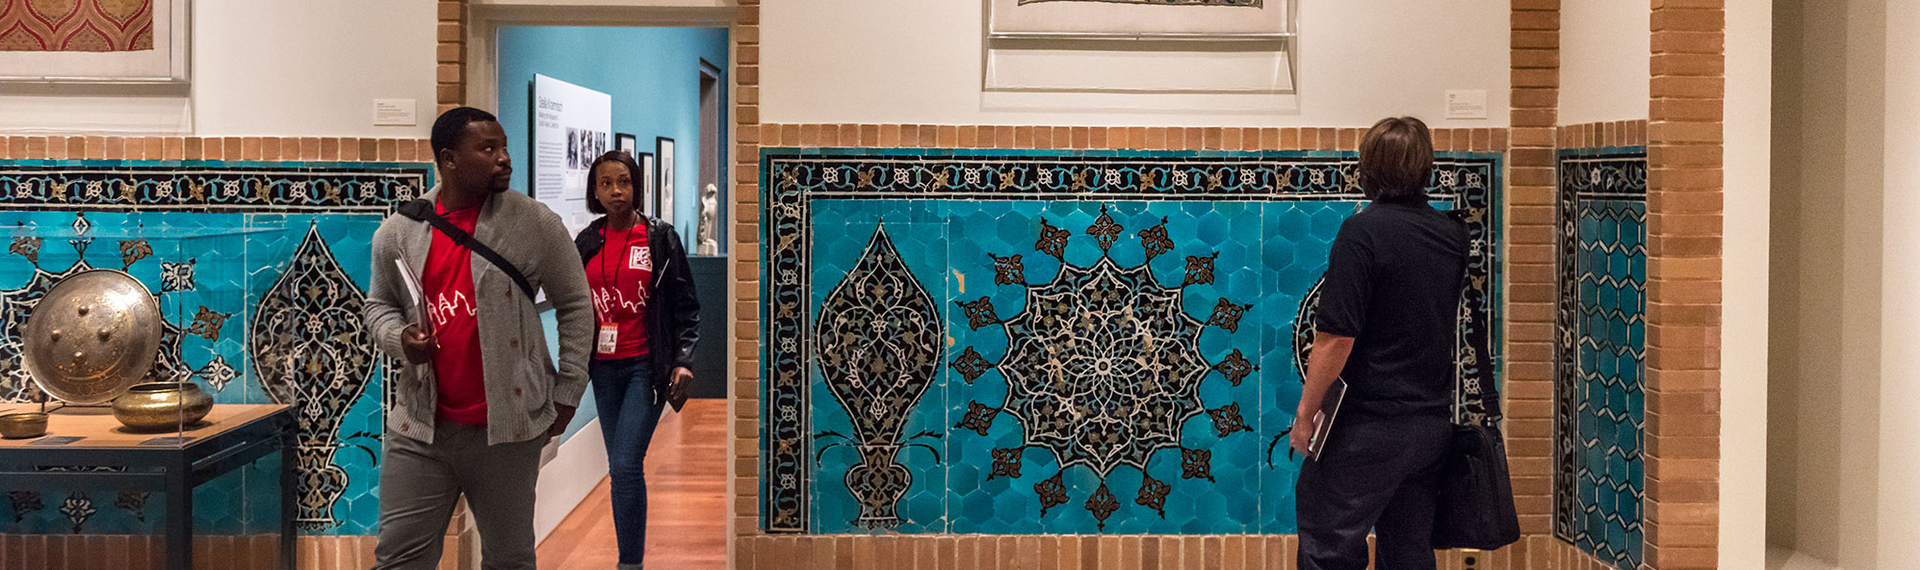 Mosaics and woven textiles capture the attention of guests wandering in the Safavid Court. Photo courtesy of Philadelphia Museum of Art.